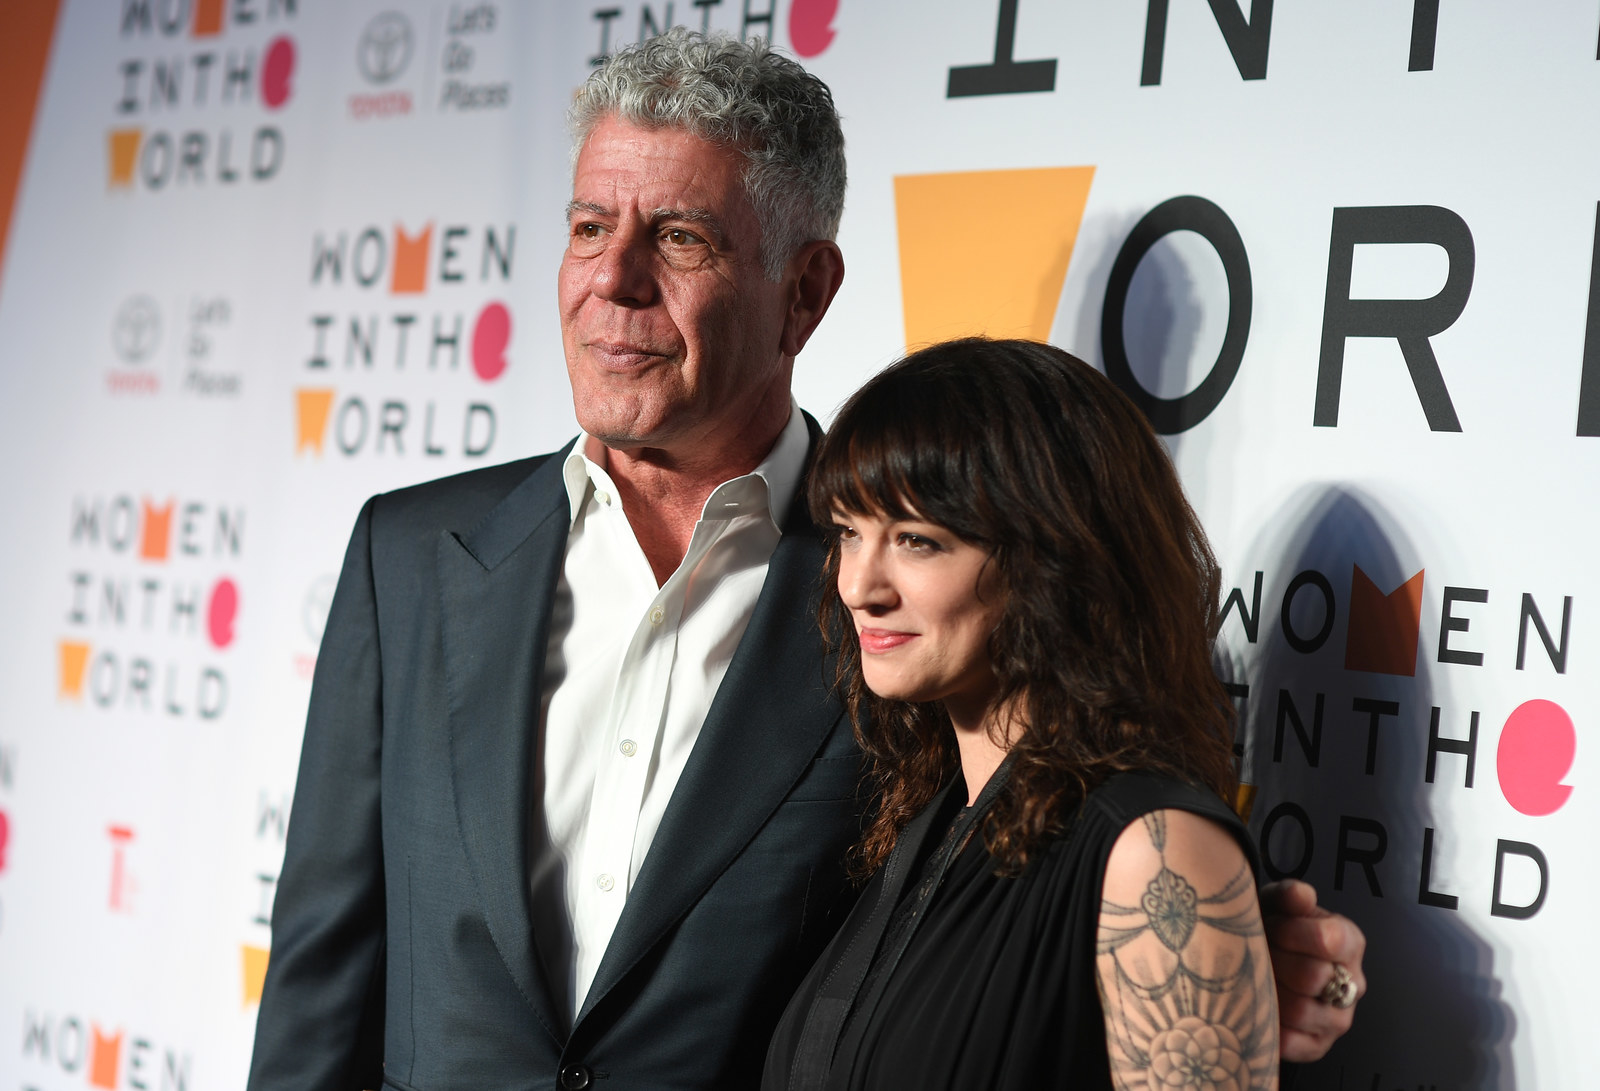 Chef Anthony Bourdain with girlfriend actor Asia Argento at the 2018 Women In The World Summit at Lincoln Center on April 12, 2018.